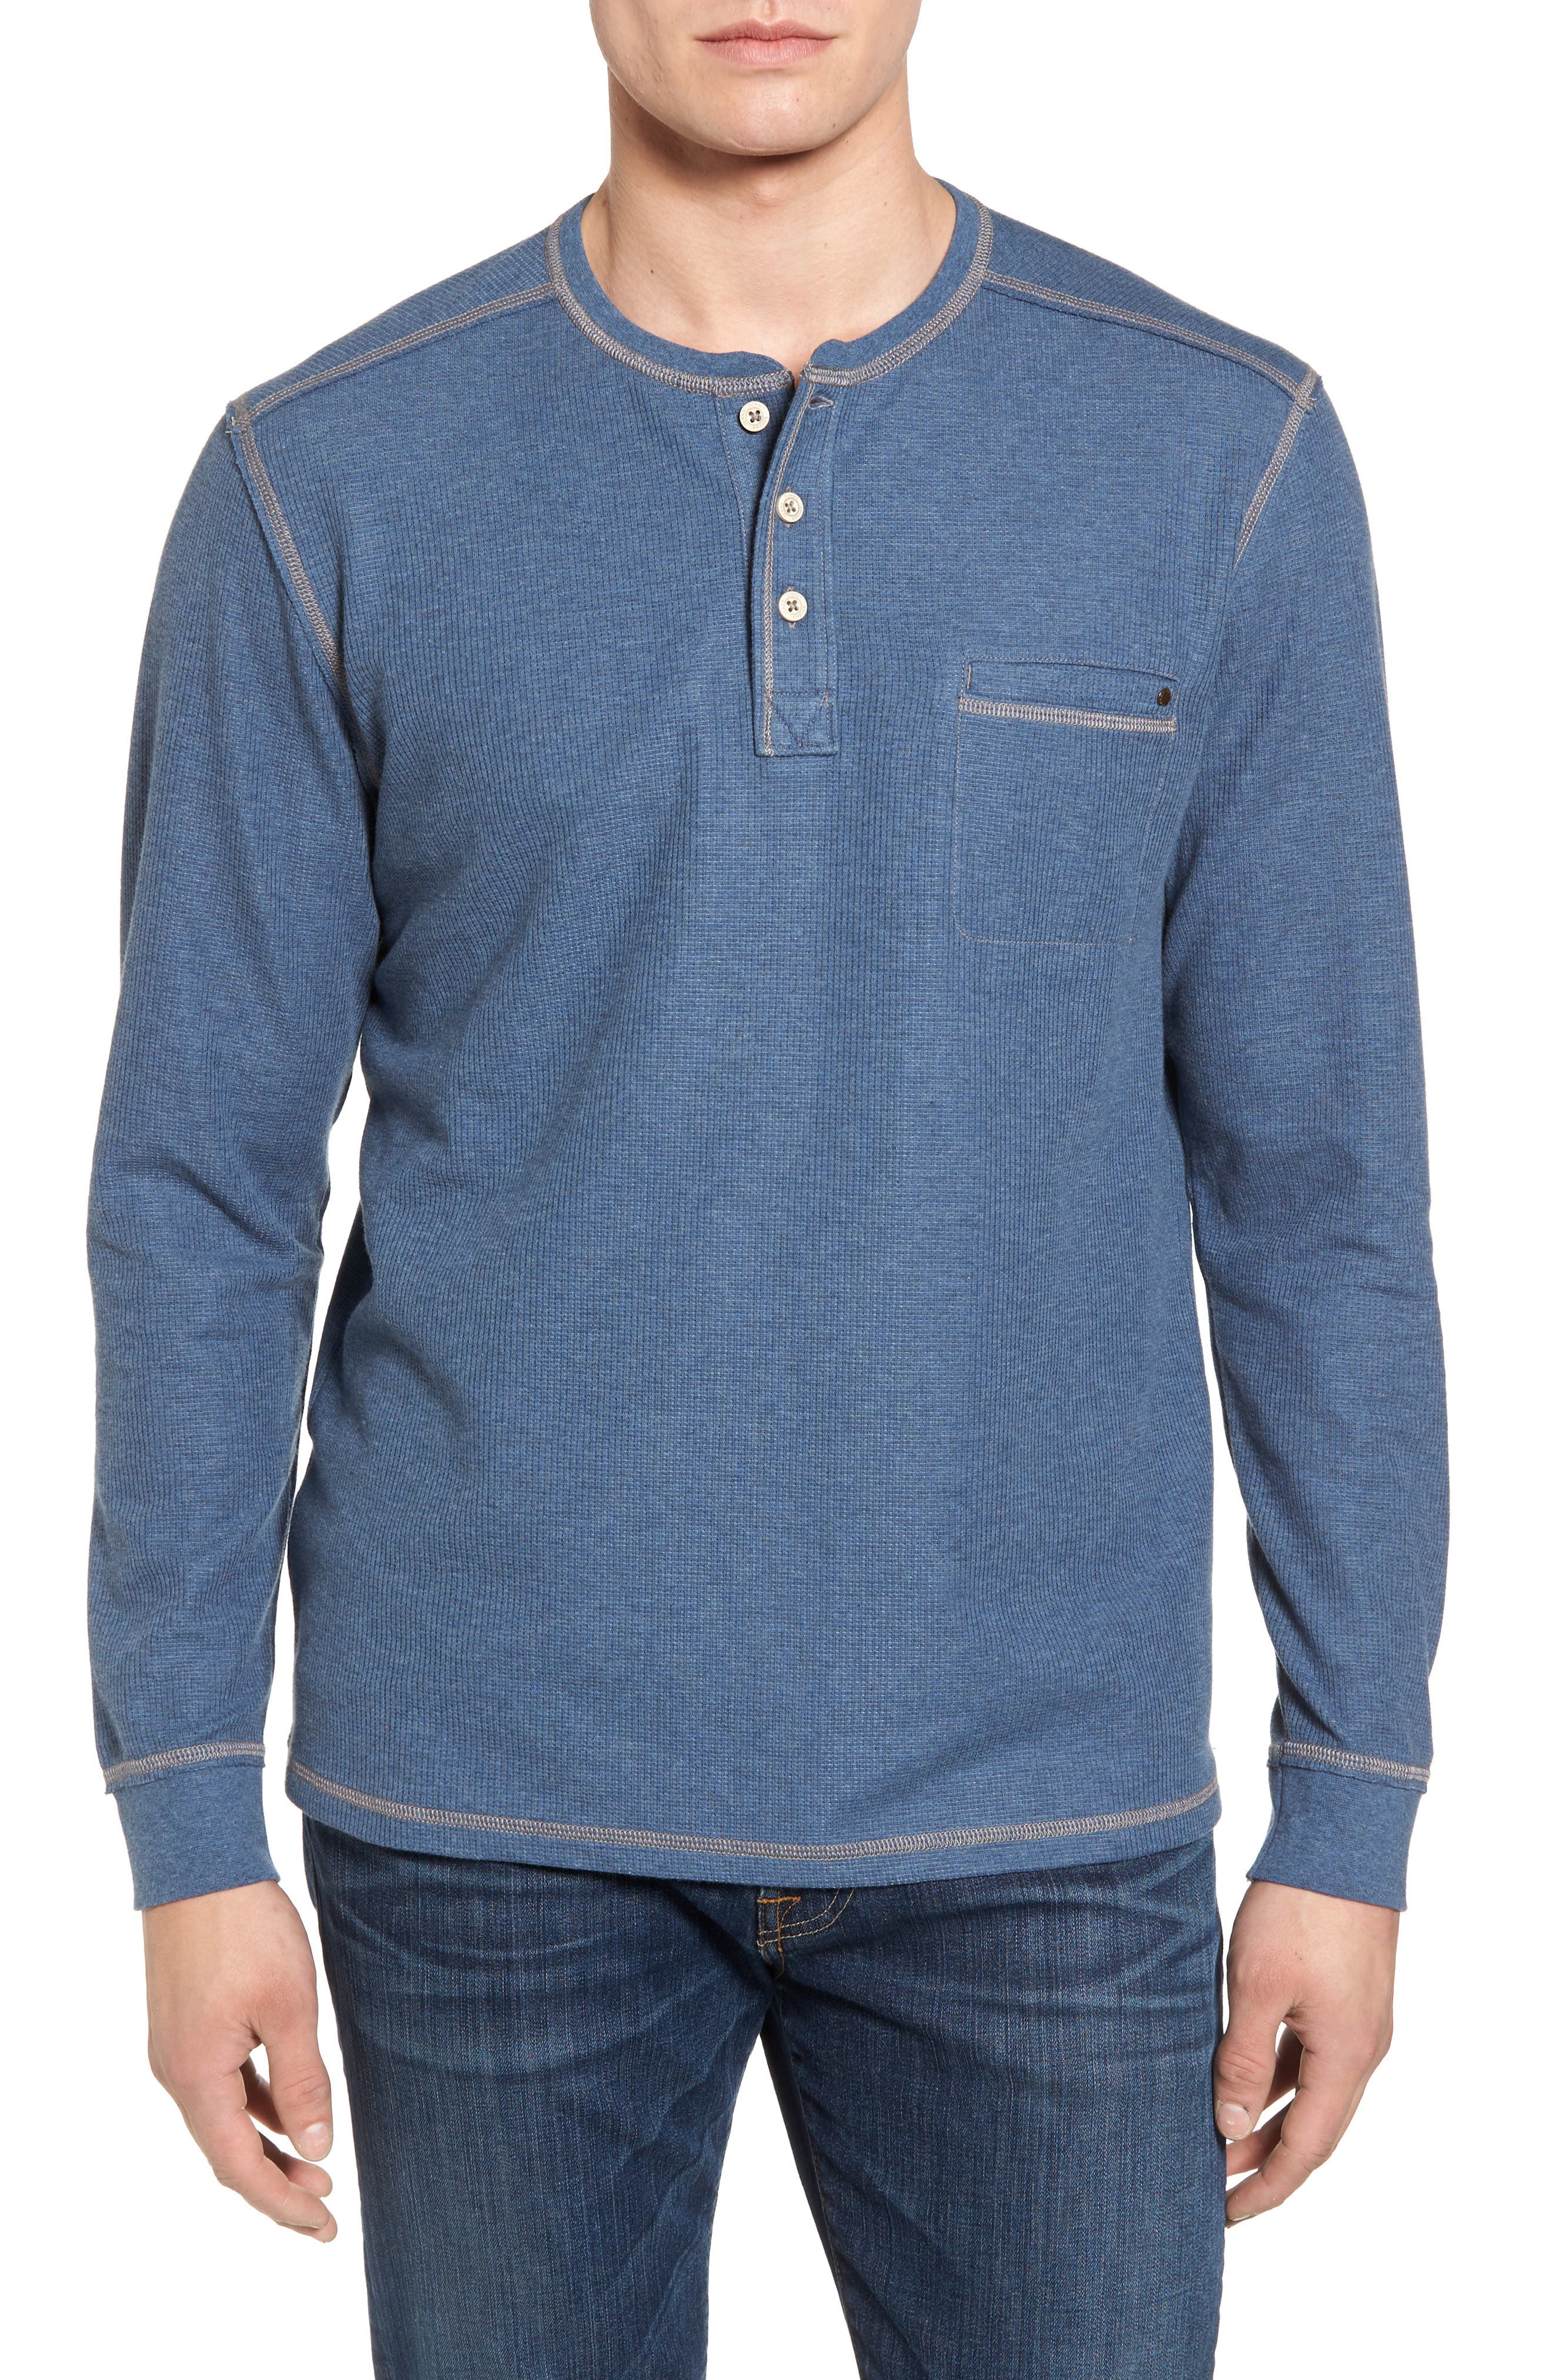 Main Image - Tommy Bahama Island Thermal Standard Fit Thermal Henley